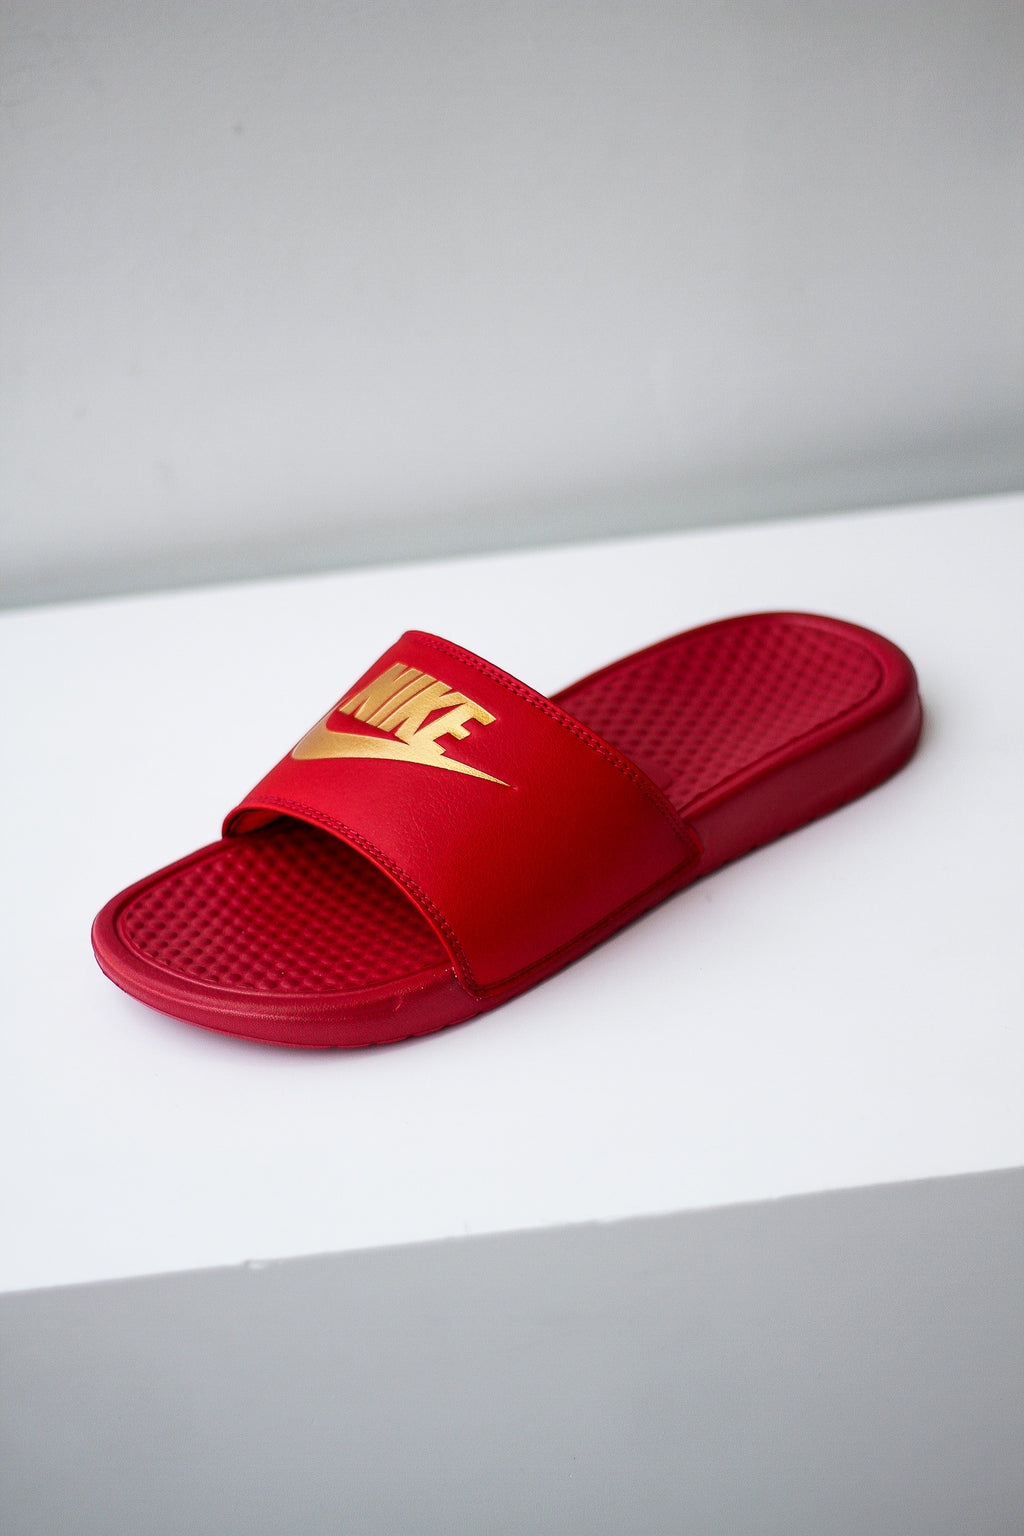 red and gold nike flip flops